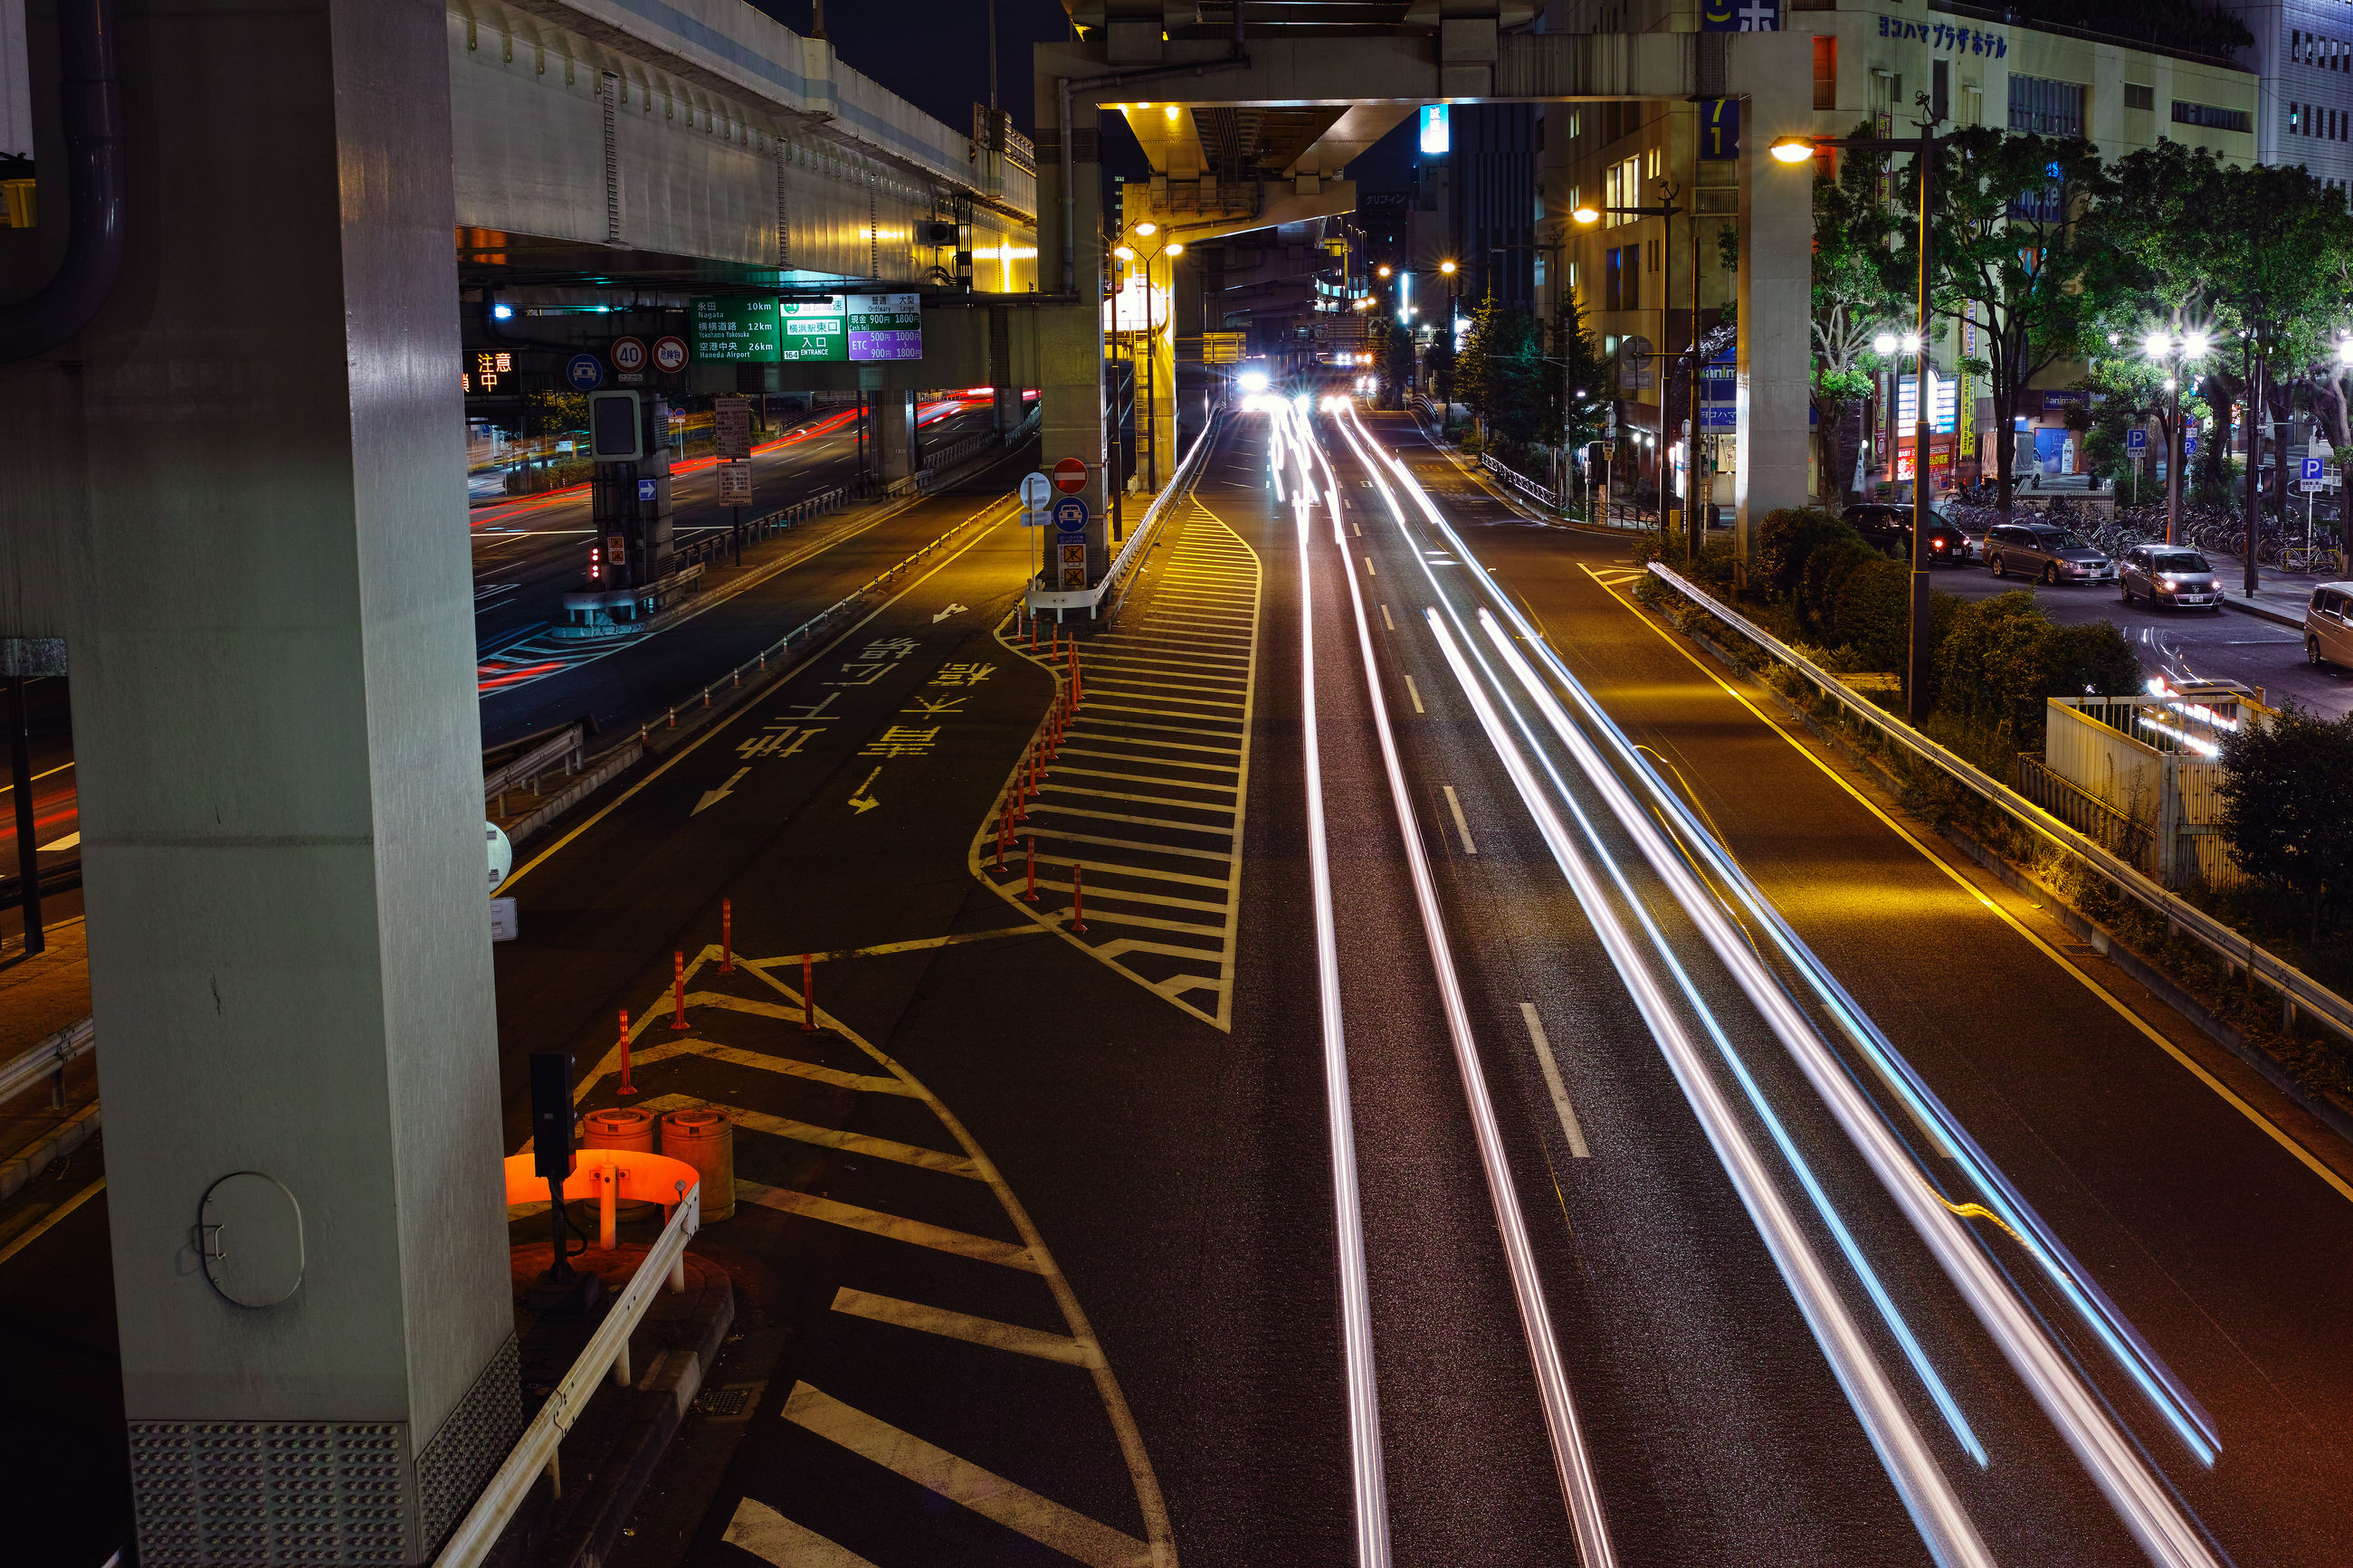 illuminated, light trail, night, motion, long exposure, speed, transportation, blurred motion, road, no people, high street, city, outdoors, architecture